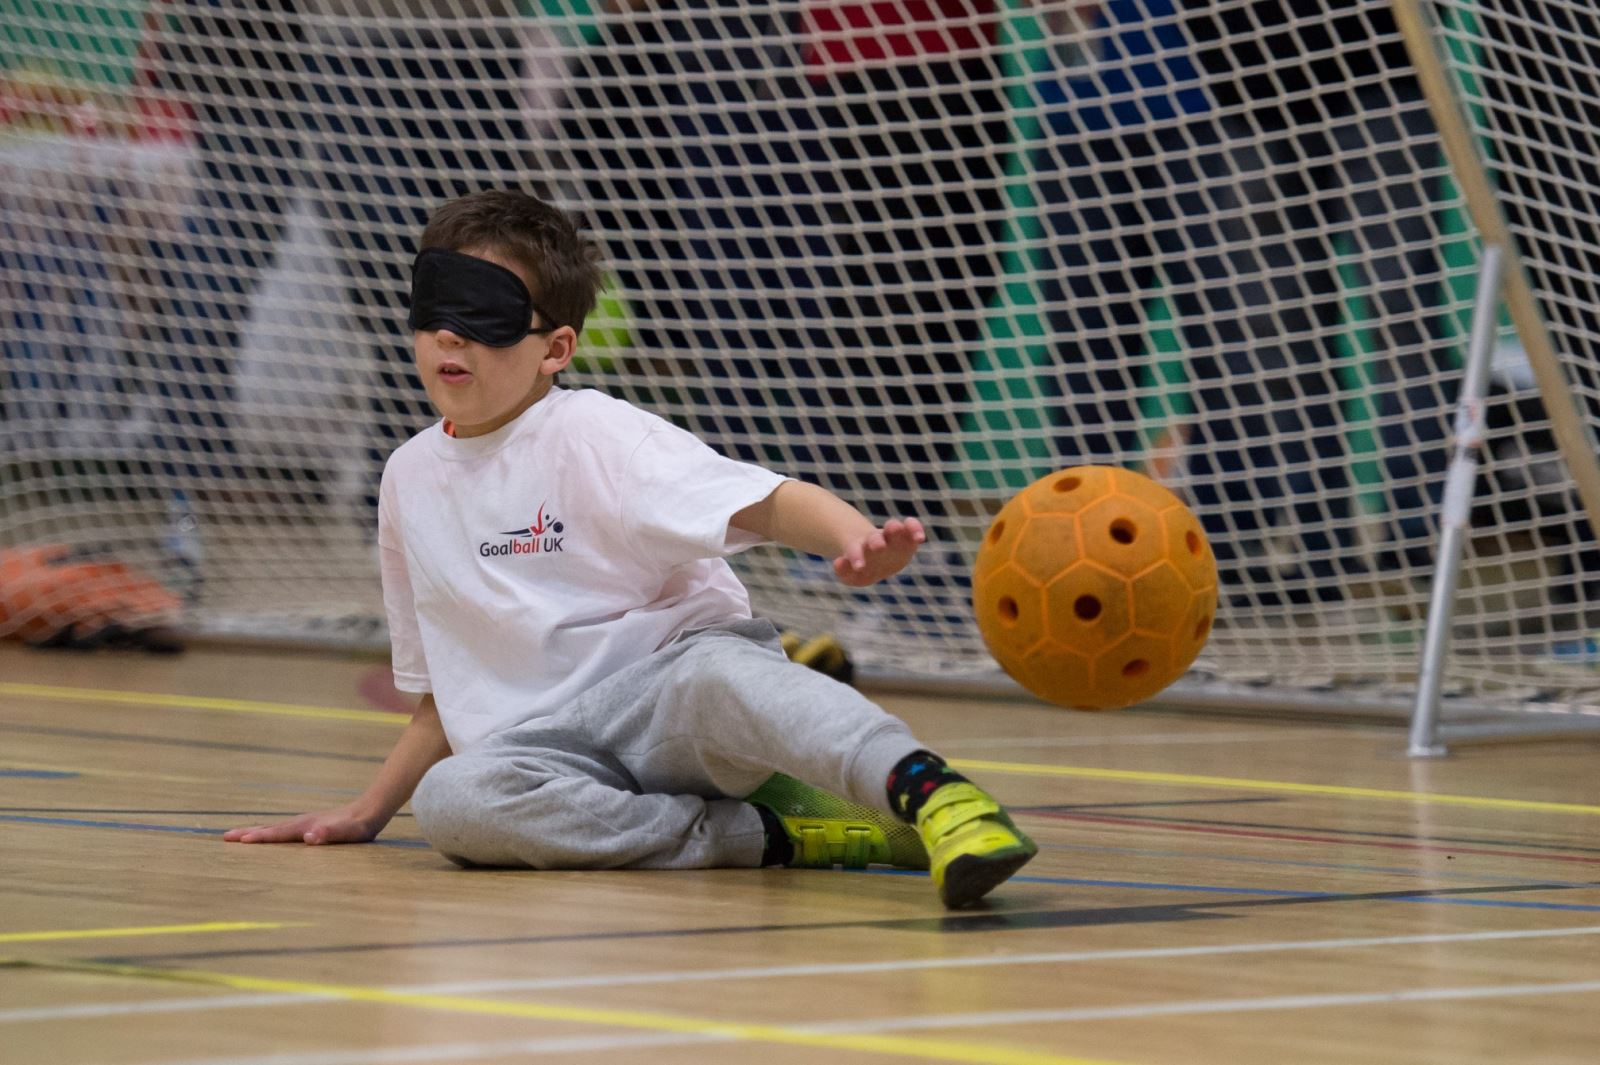 Child with eyeshades in front of goal as ball passes him